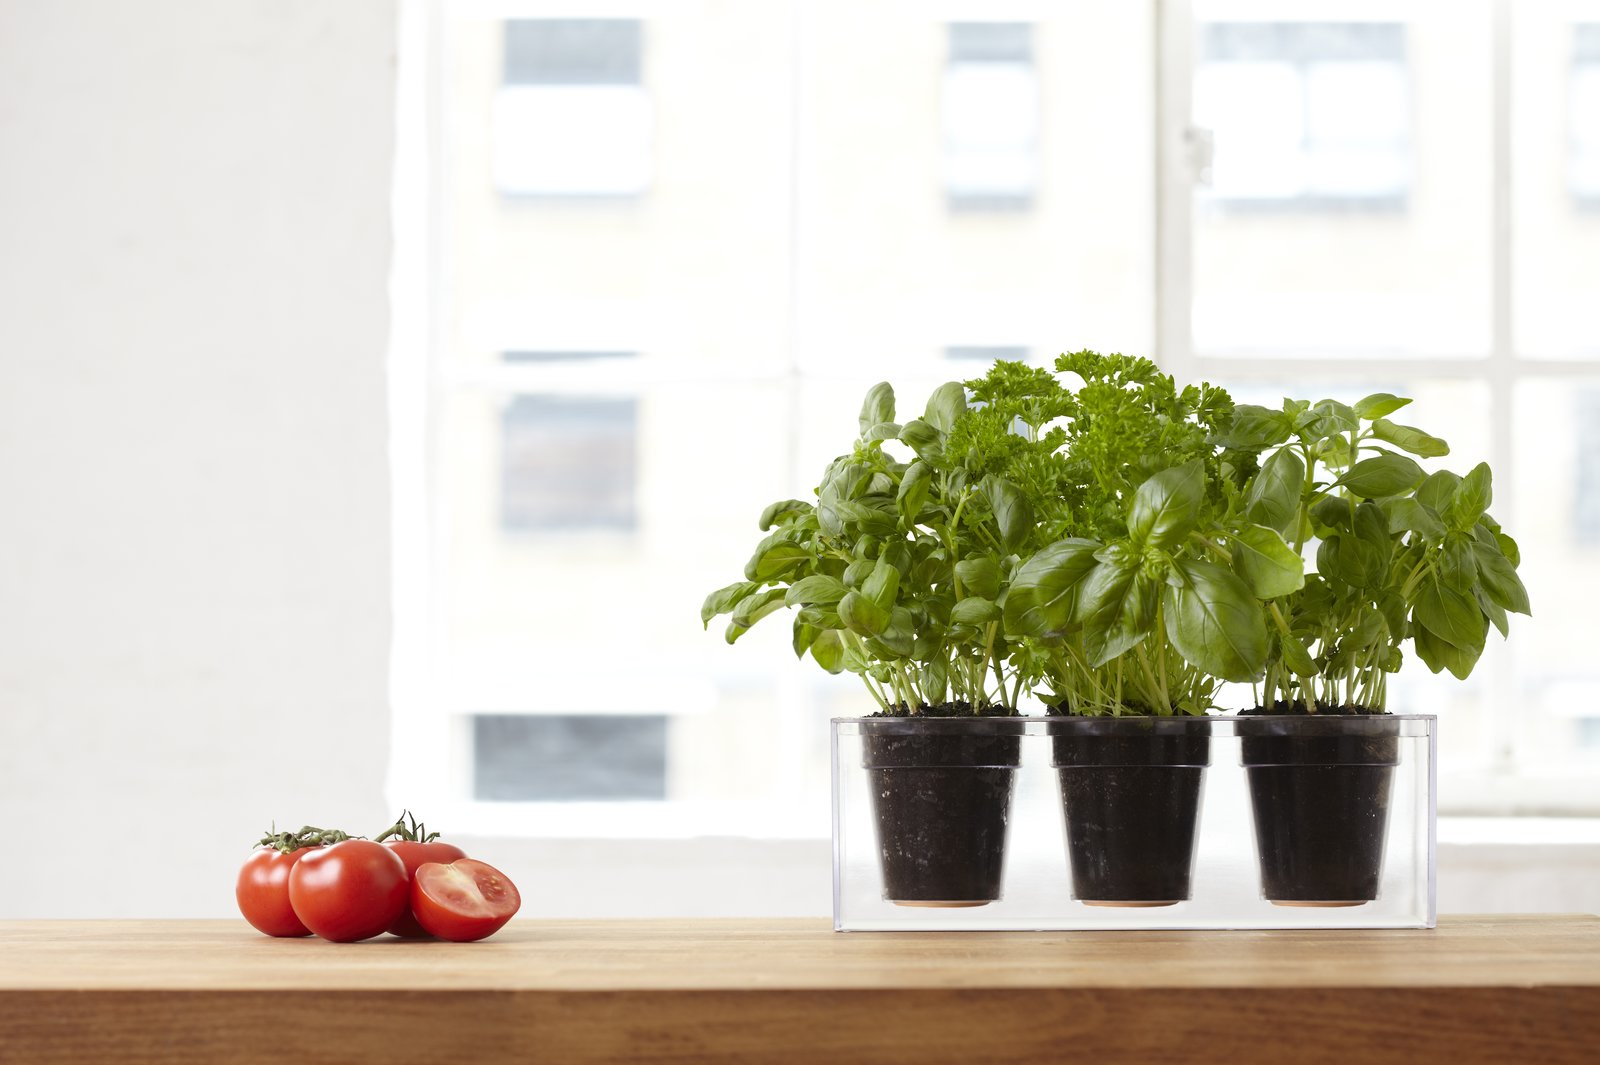 The Bosske cubes can be used to house flowers, giving a pop of color to an apartment, or a variety of other plants. The trio planter makes for a great herb garden on a kitchen windowsill or counter.    Photo 3 of 6 in 5 Simple Tips For Growing an Indoor Herb Garden from Easy Urban Gardening with Bosske Planters